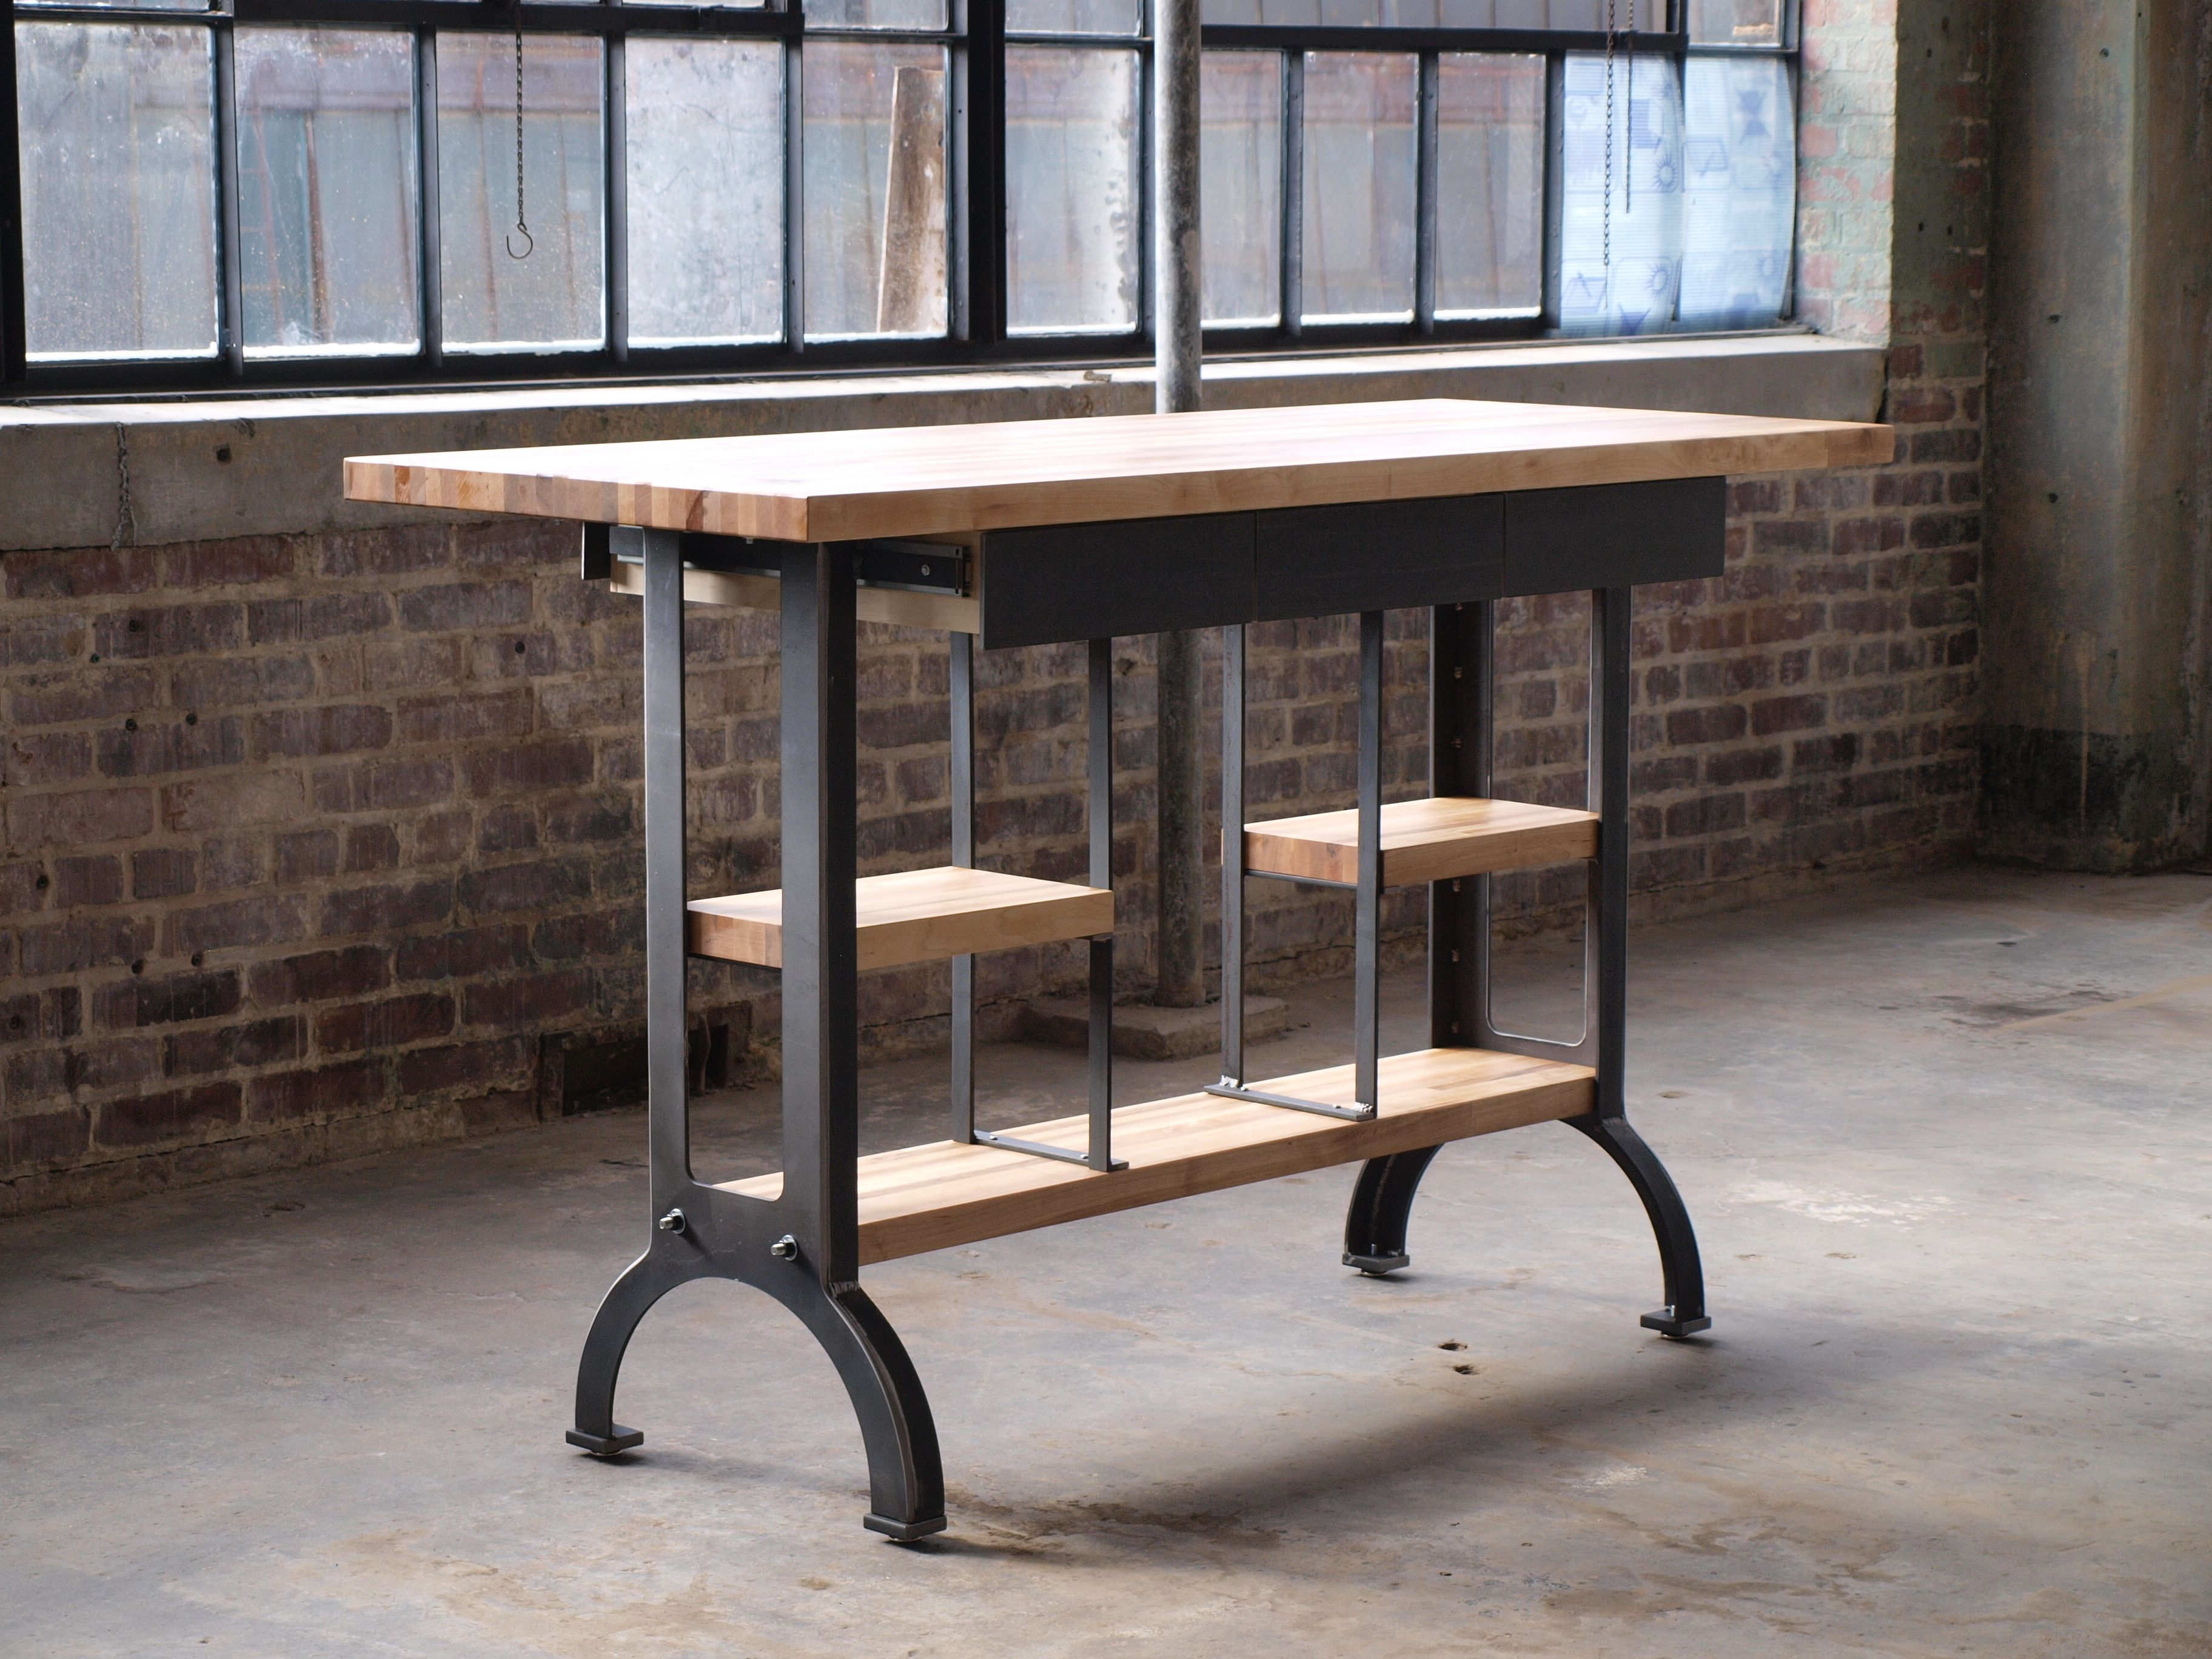 kitchen console aid artisan buy a custom maple modern industrial island table made